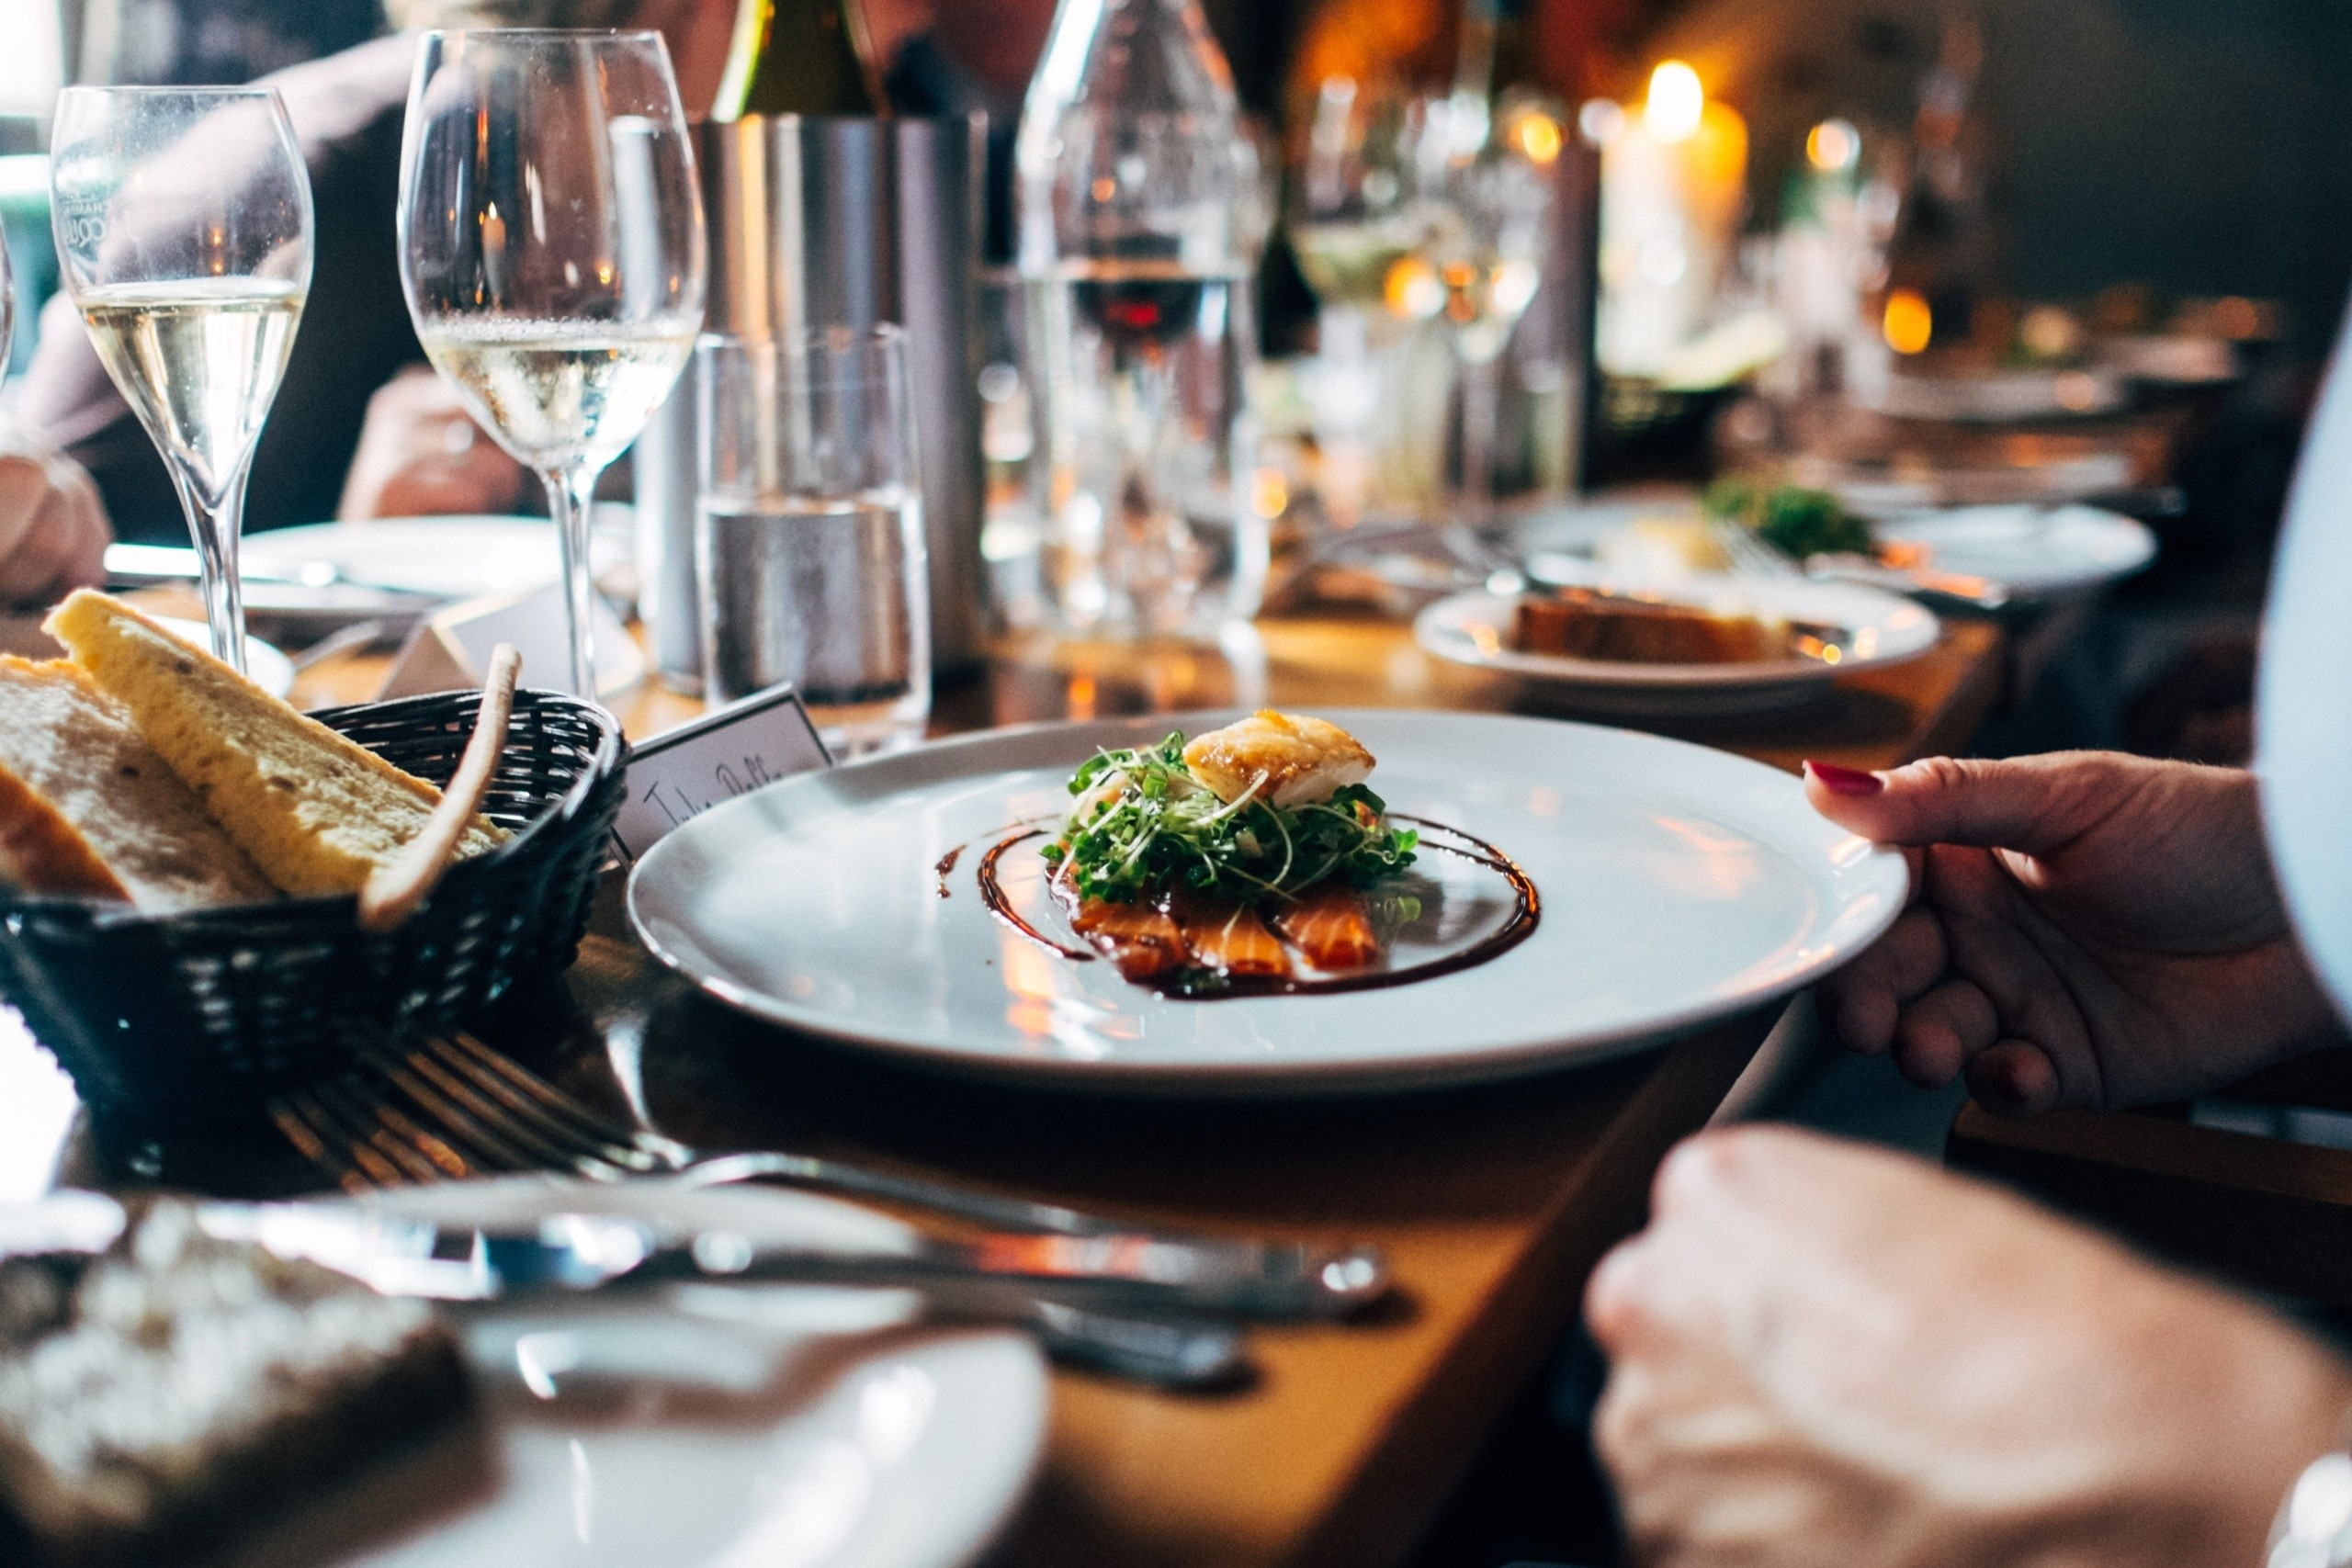 food being served at a restaurant - Using Technology To Power Your Food Business